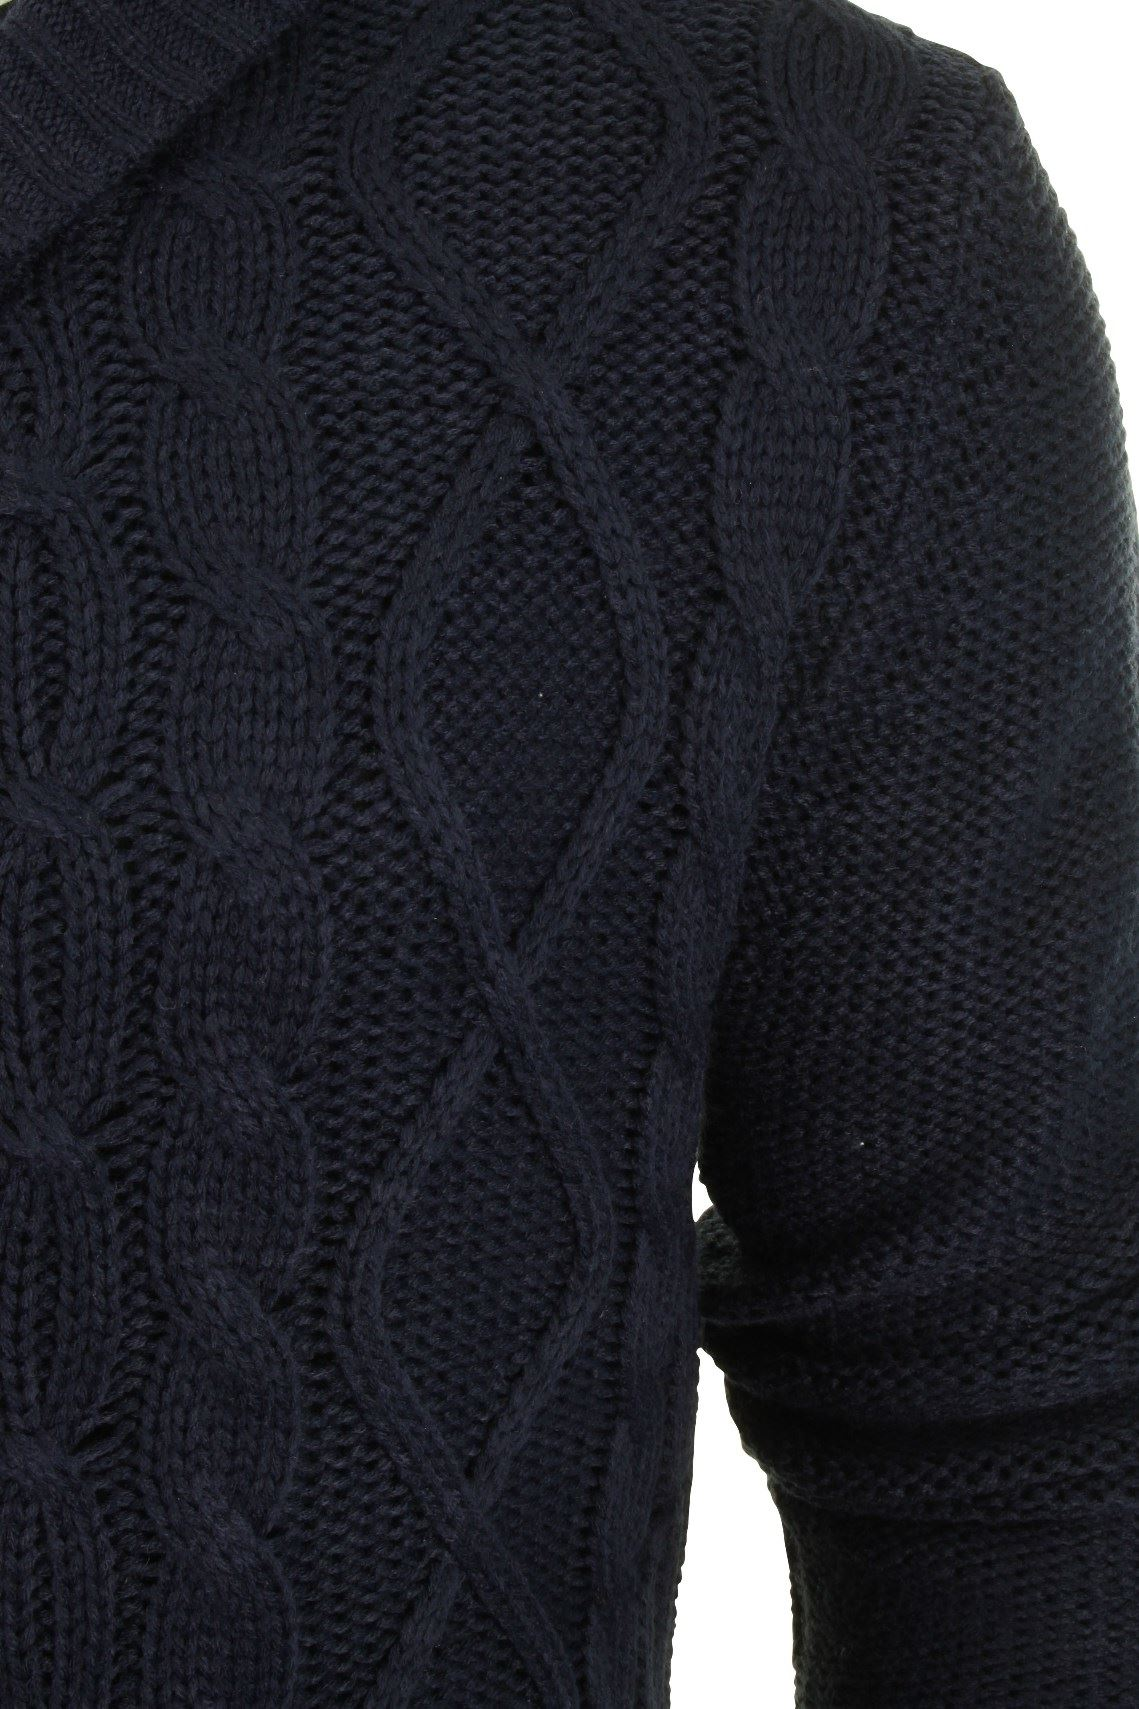 Mens-Cable-Knitted-Cardigan-Brave-Soul-Buttoned-Sweater-Shawl-Neck-Winter-New thumbnail 5